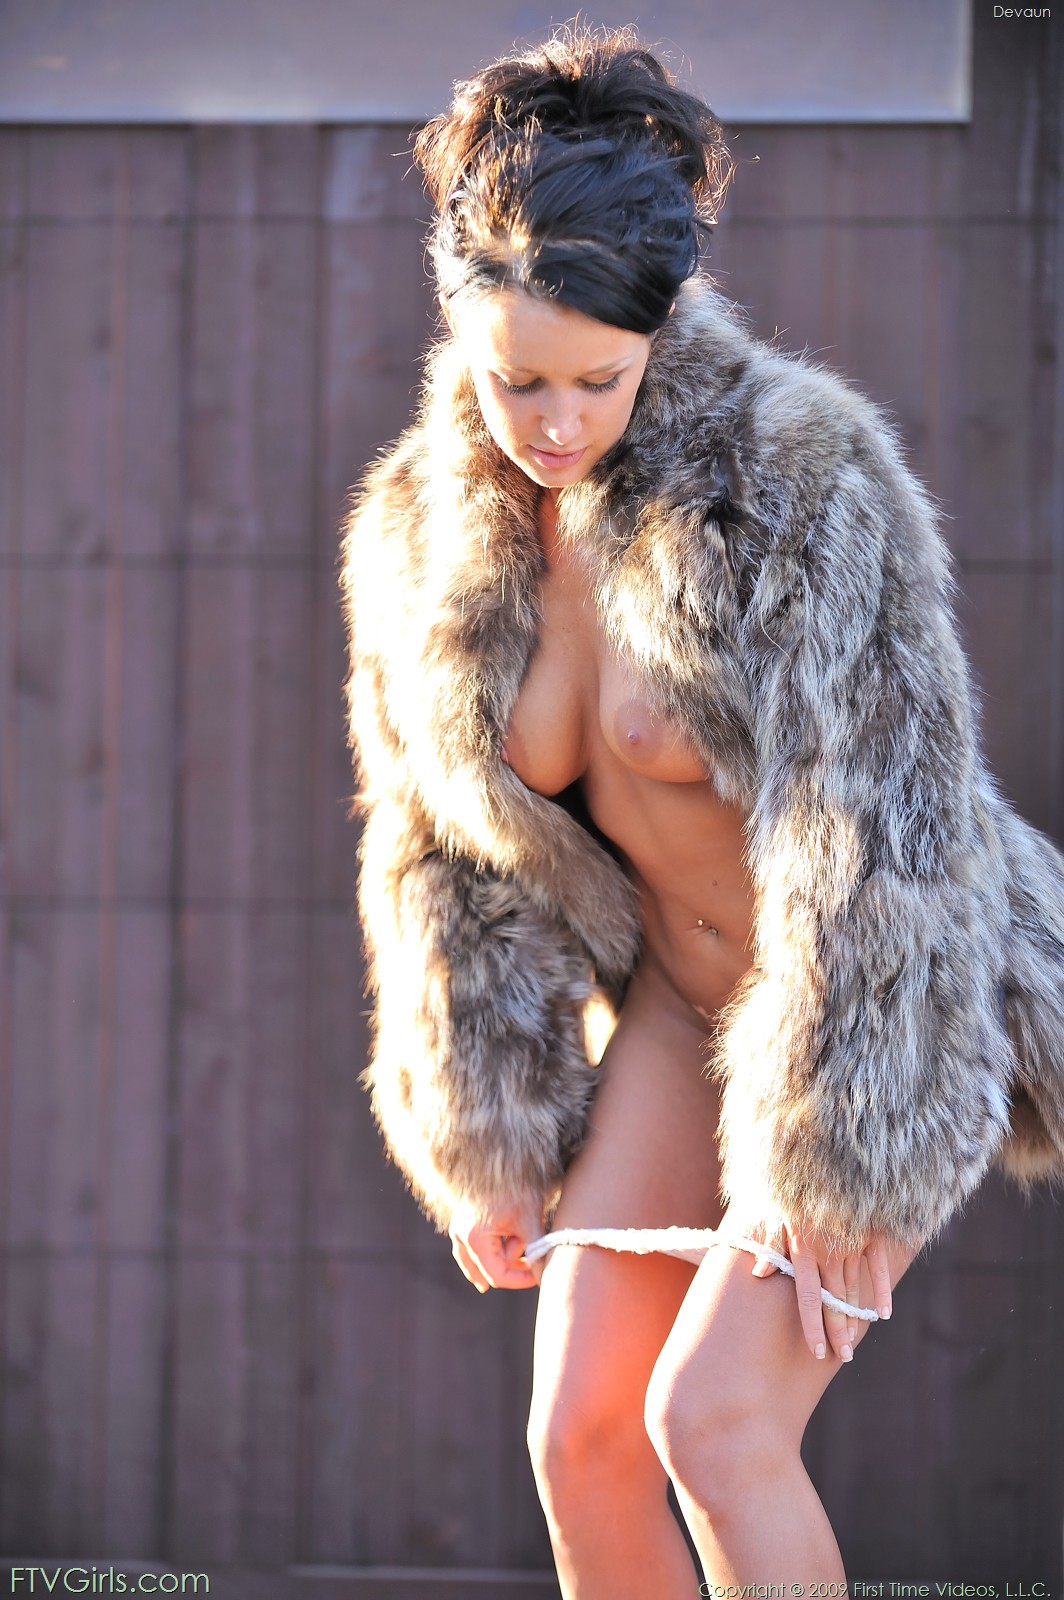 Fur Coat And Mask Mutual Orgasm On Top